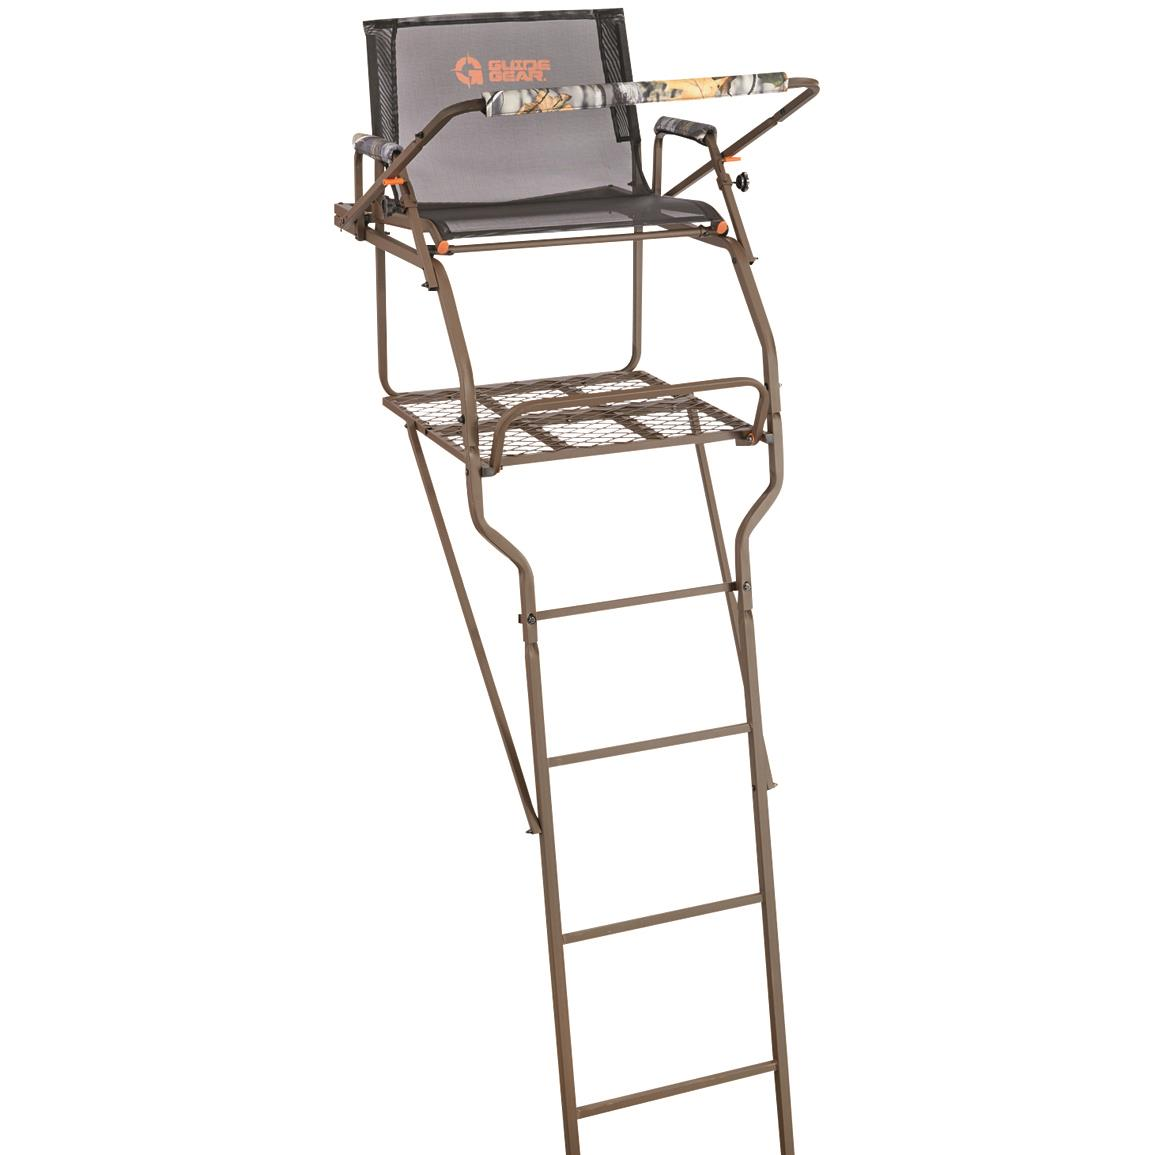 Guide Gear 18' Ultra Comfort Ladder Tree Stand